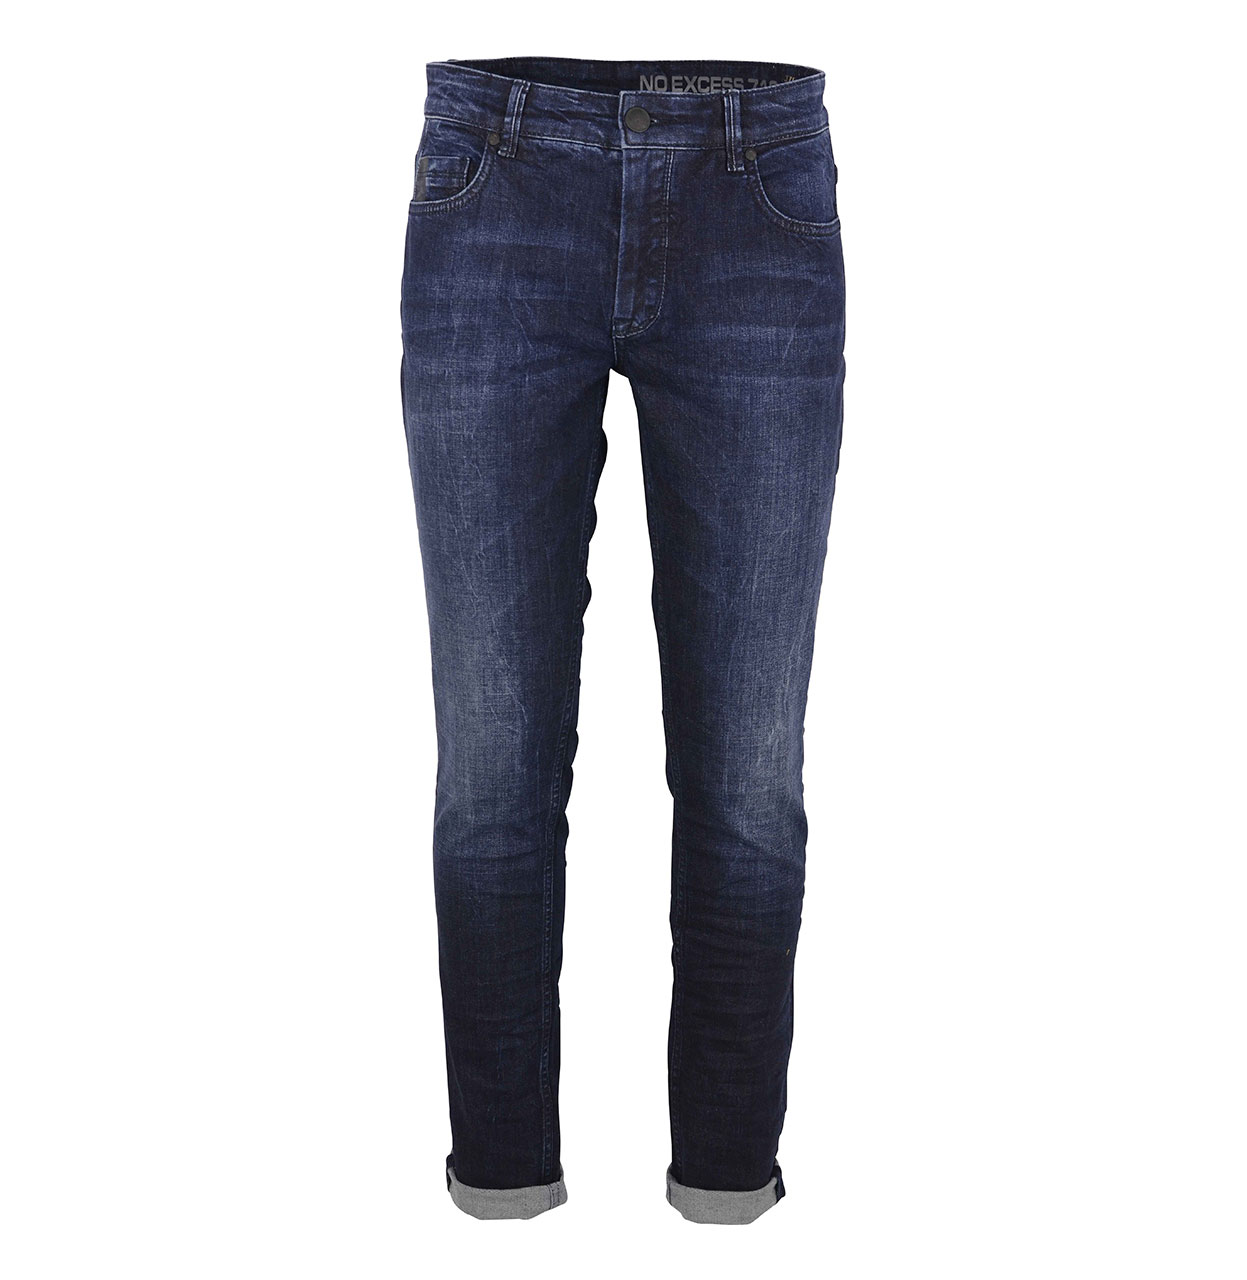 No Excess Jeans N710D1532 228 Stone Used N710D1532 blauw Maat 29